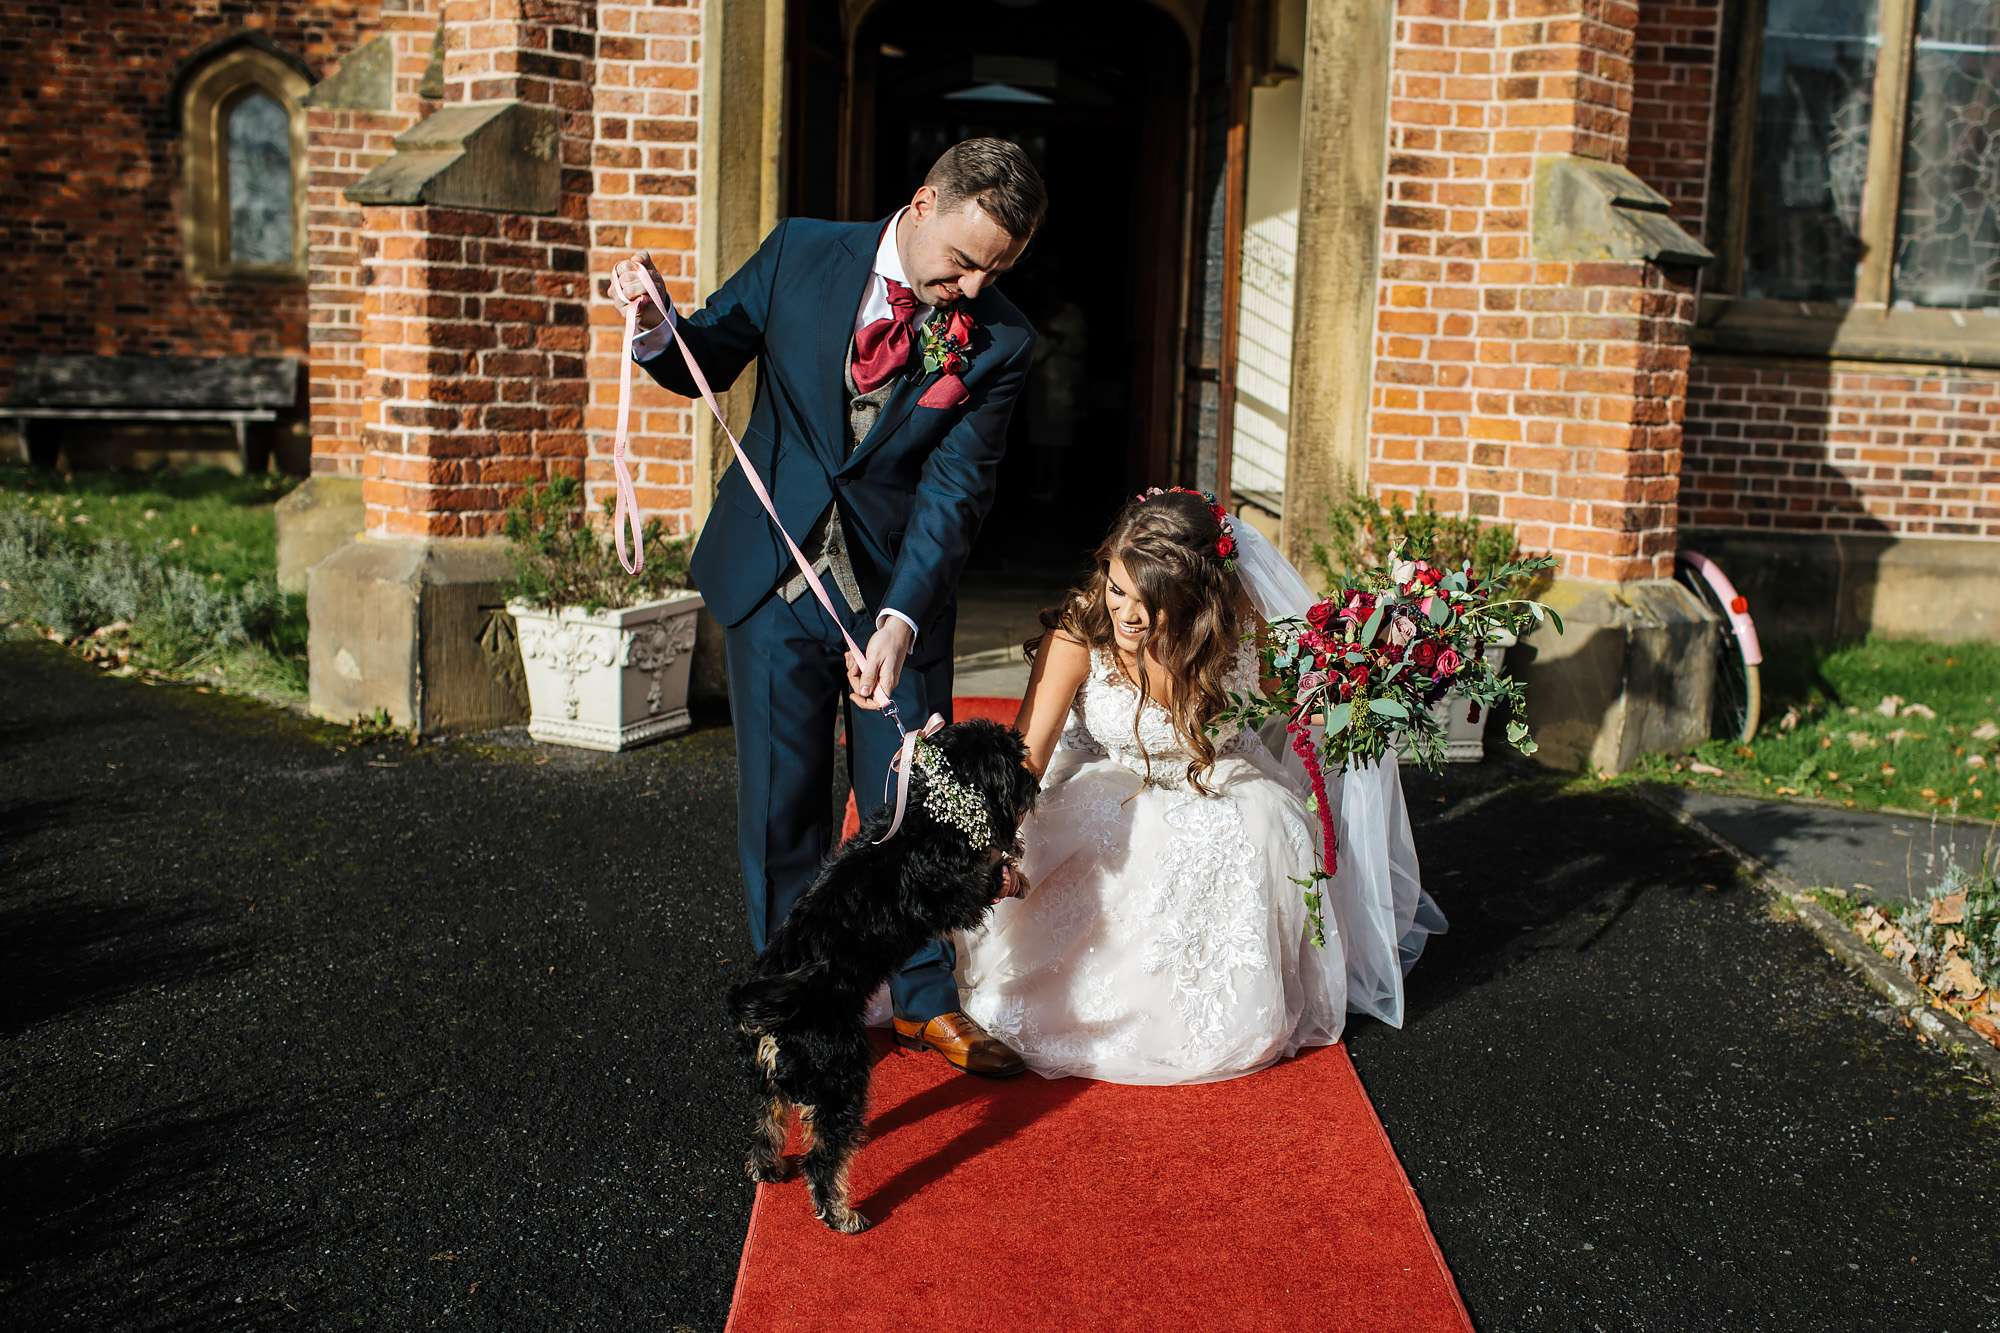 Bride and groom pose with their dog at the wedding